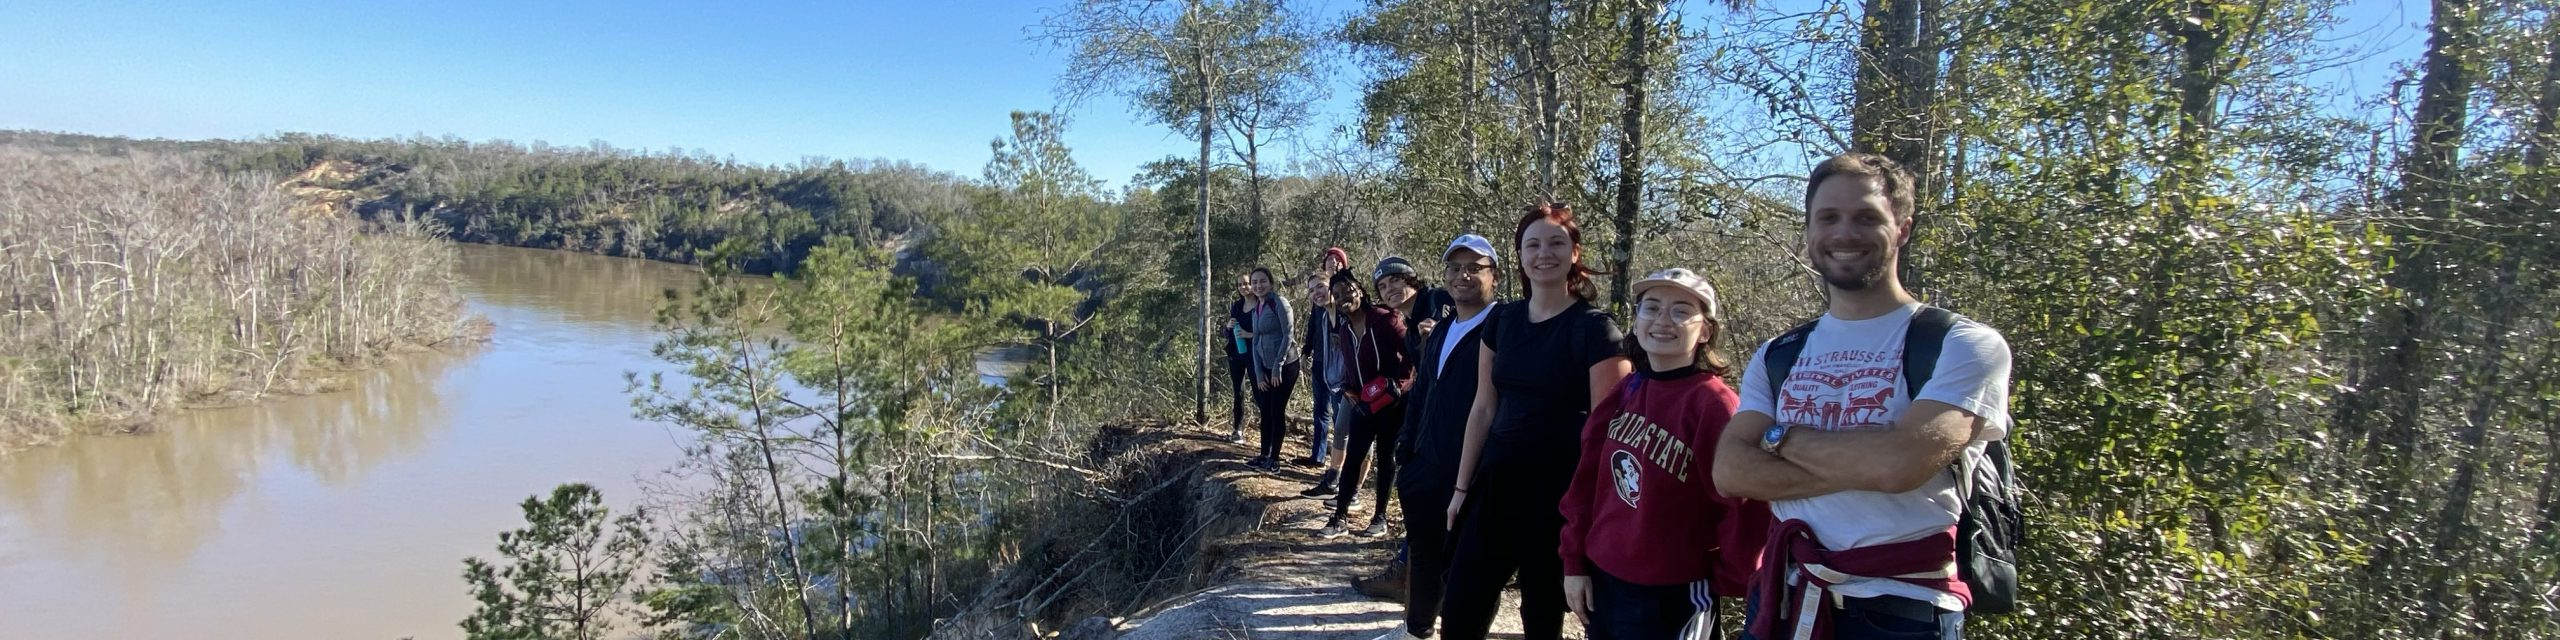 A group of people on a hike